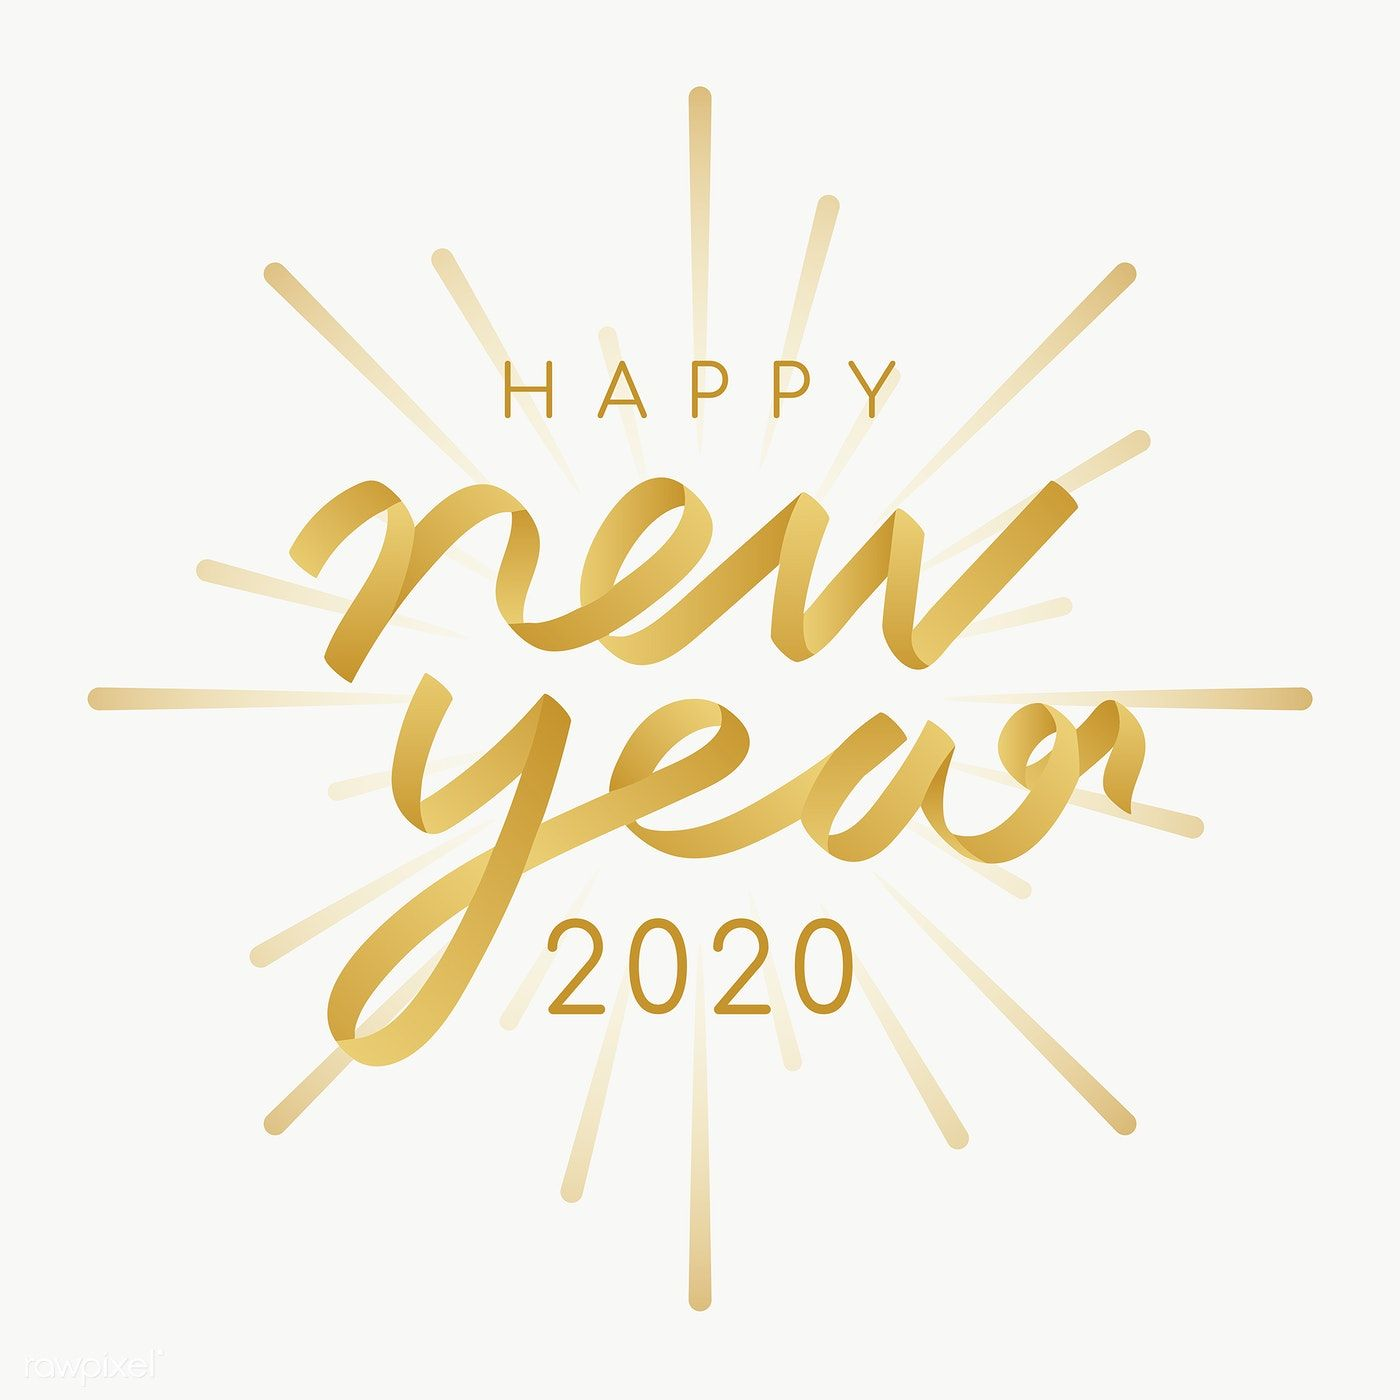 download premium png of happy new year 2020 transparent background png happy new year png happy new year pictures happy new year design download premium png of happy new year